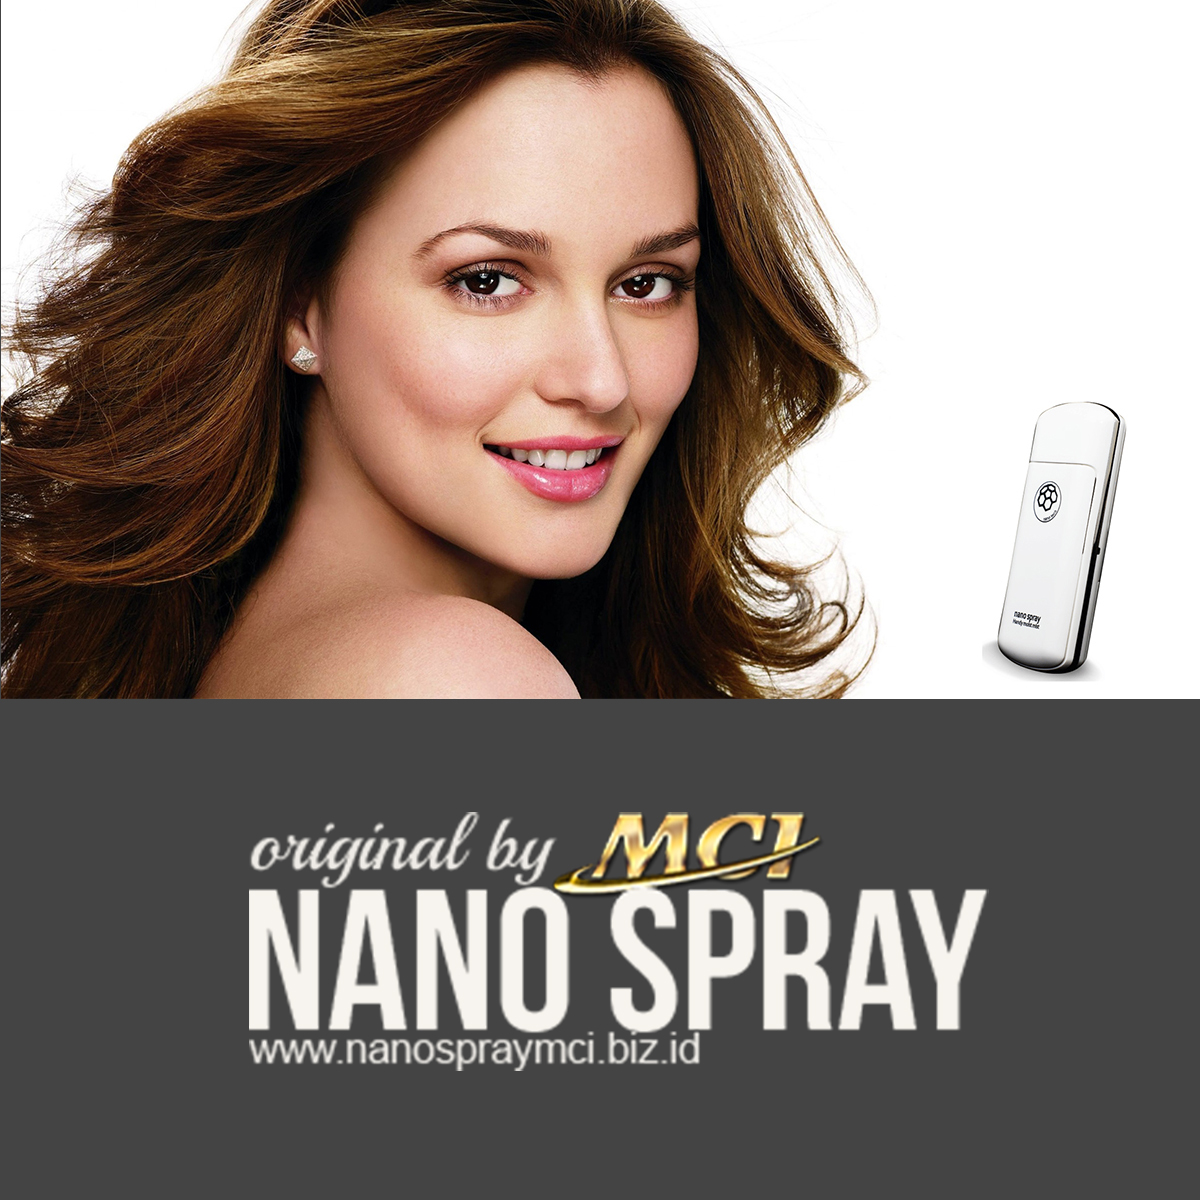 Nano Spray Ad